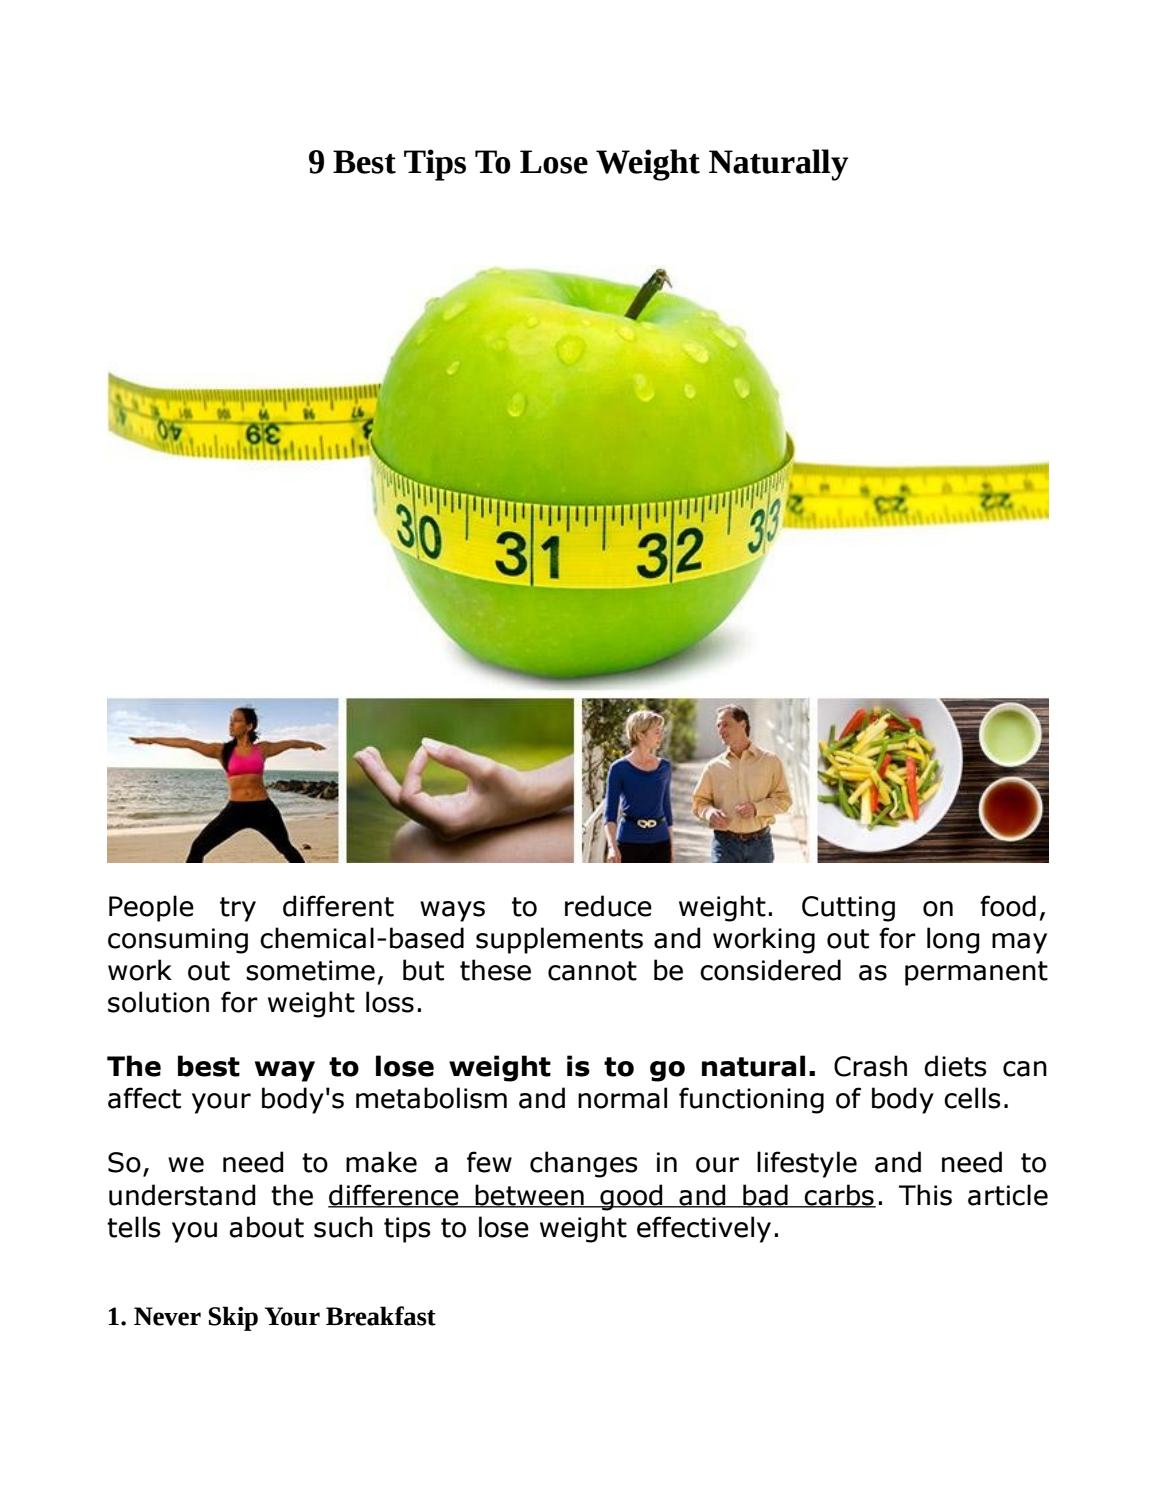 9 Best Tips To Lose Weight Naturally By Danielpatrik Issuu